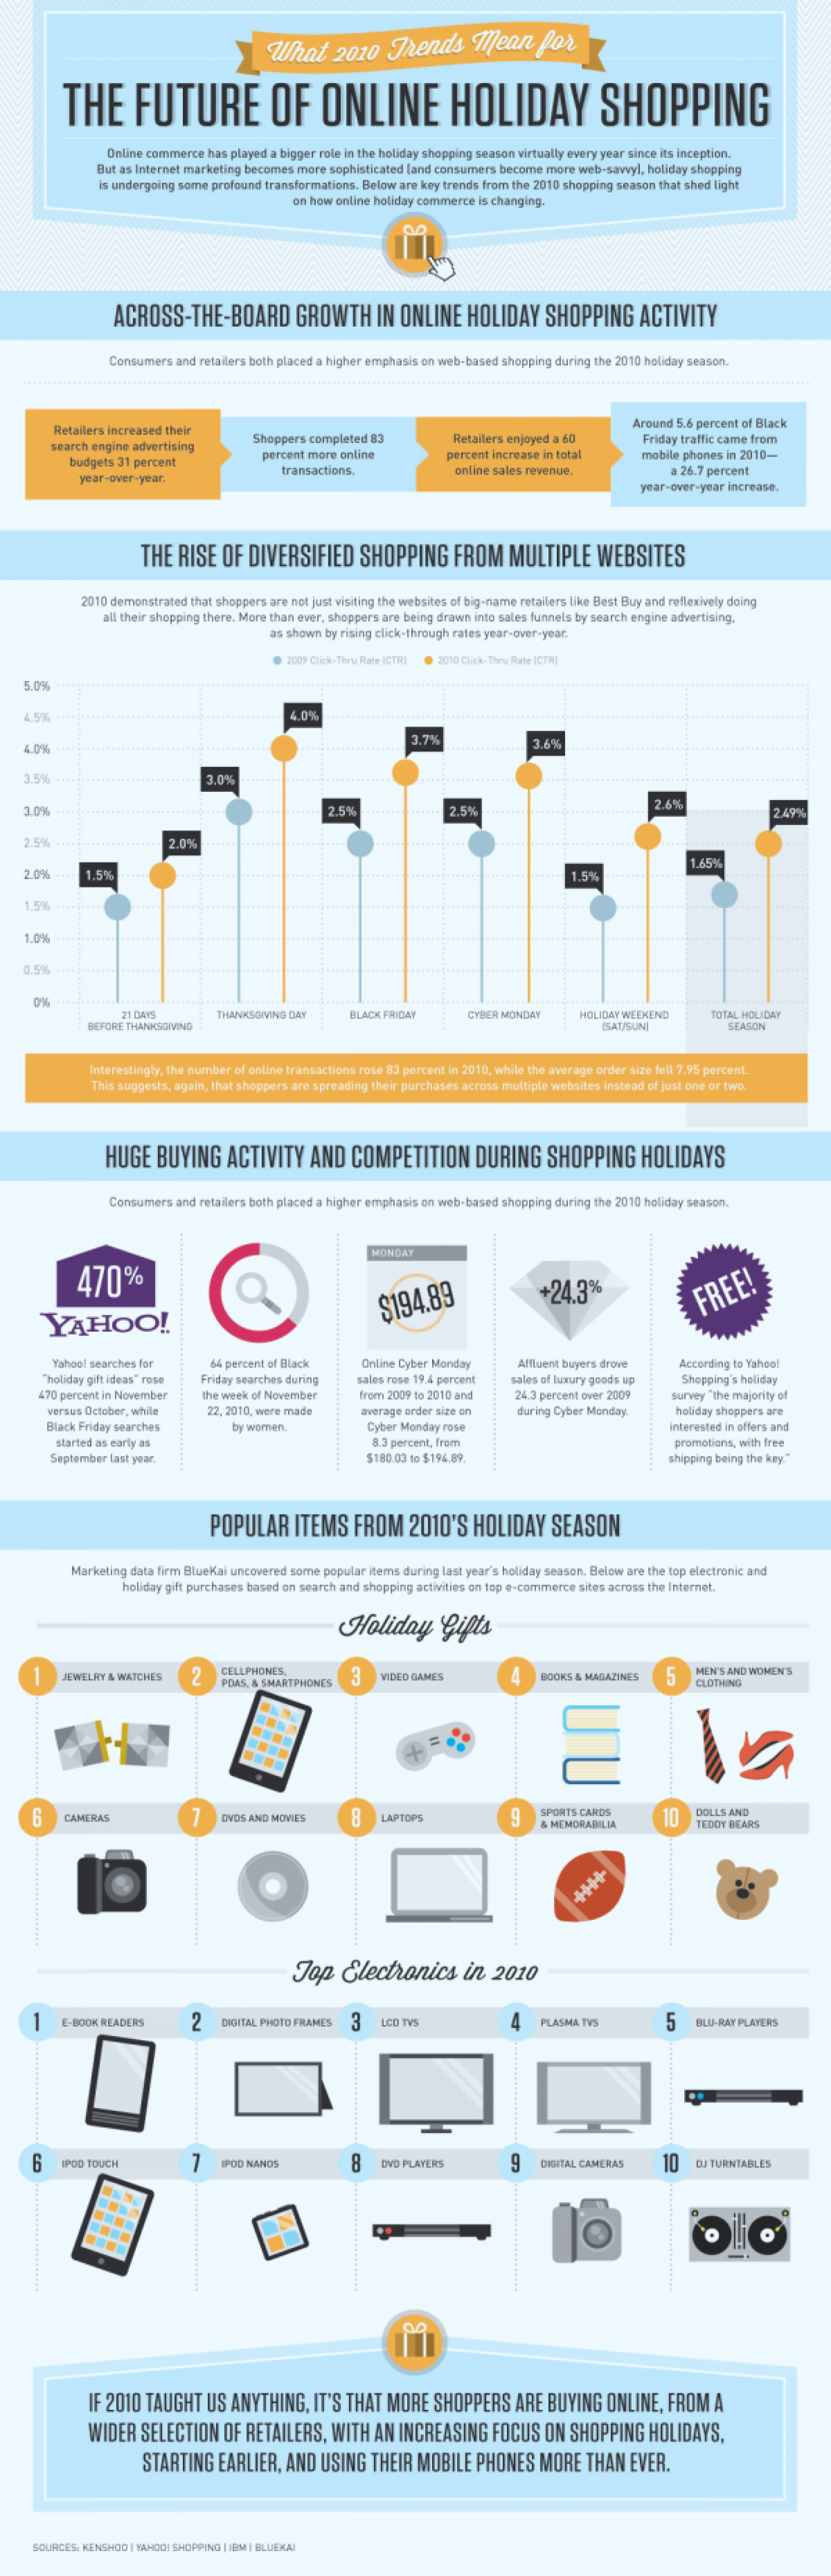 The Future of Online Holiday Shopping Infographic